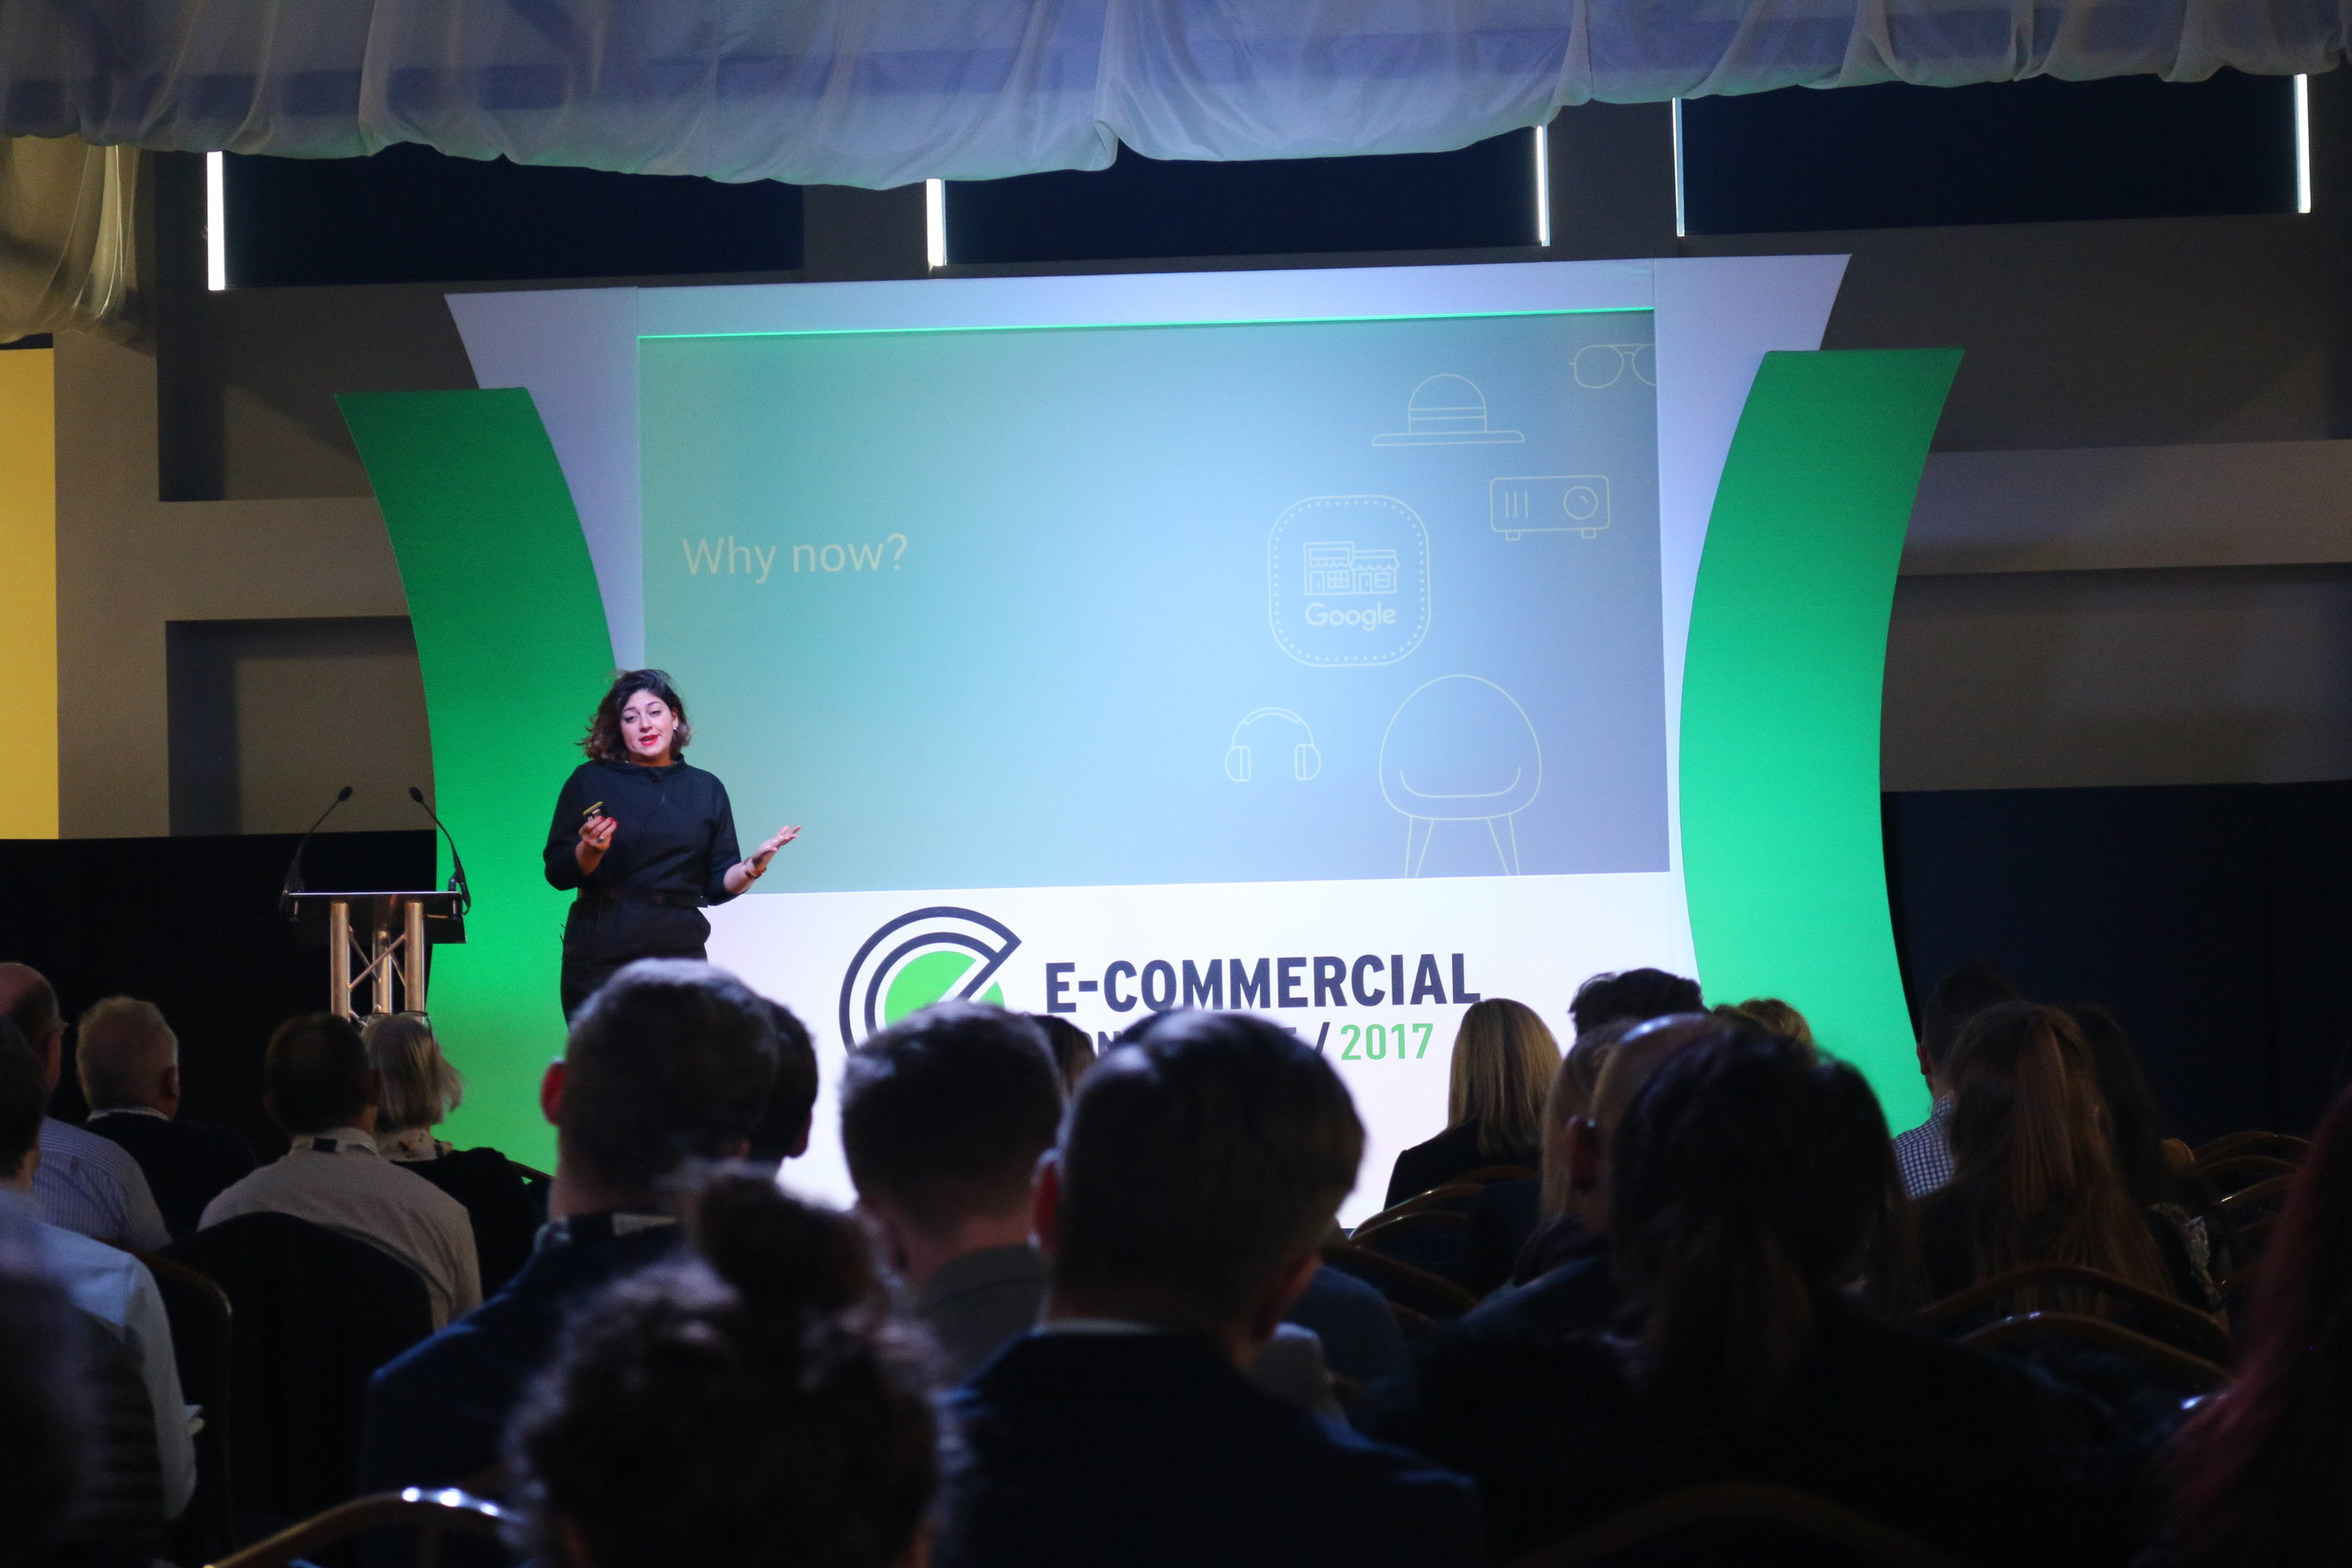 E-Commercial Conference 2017